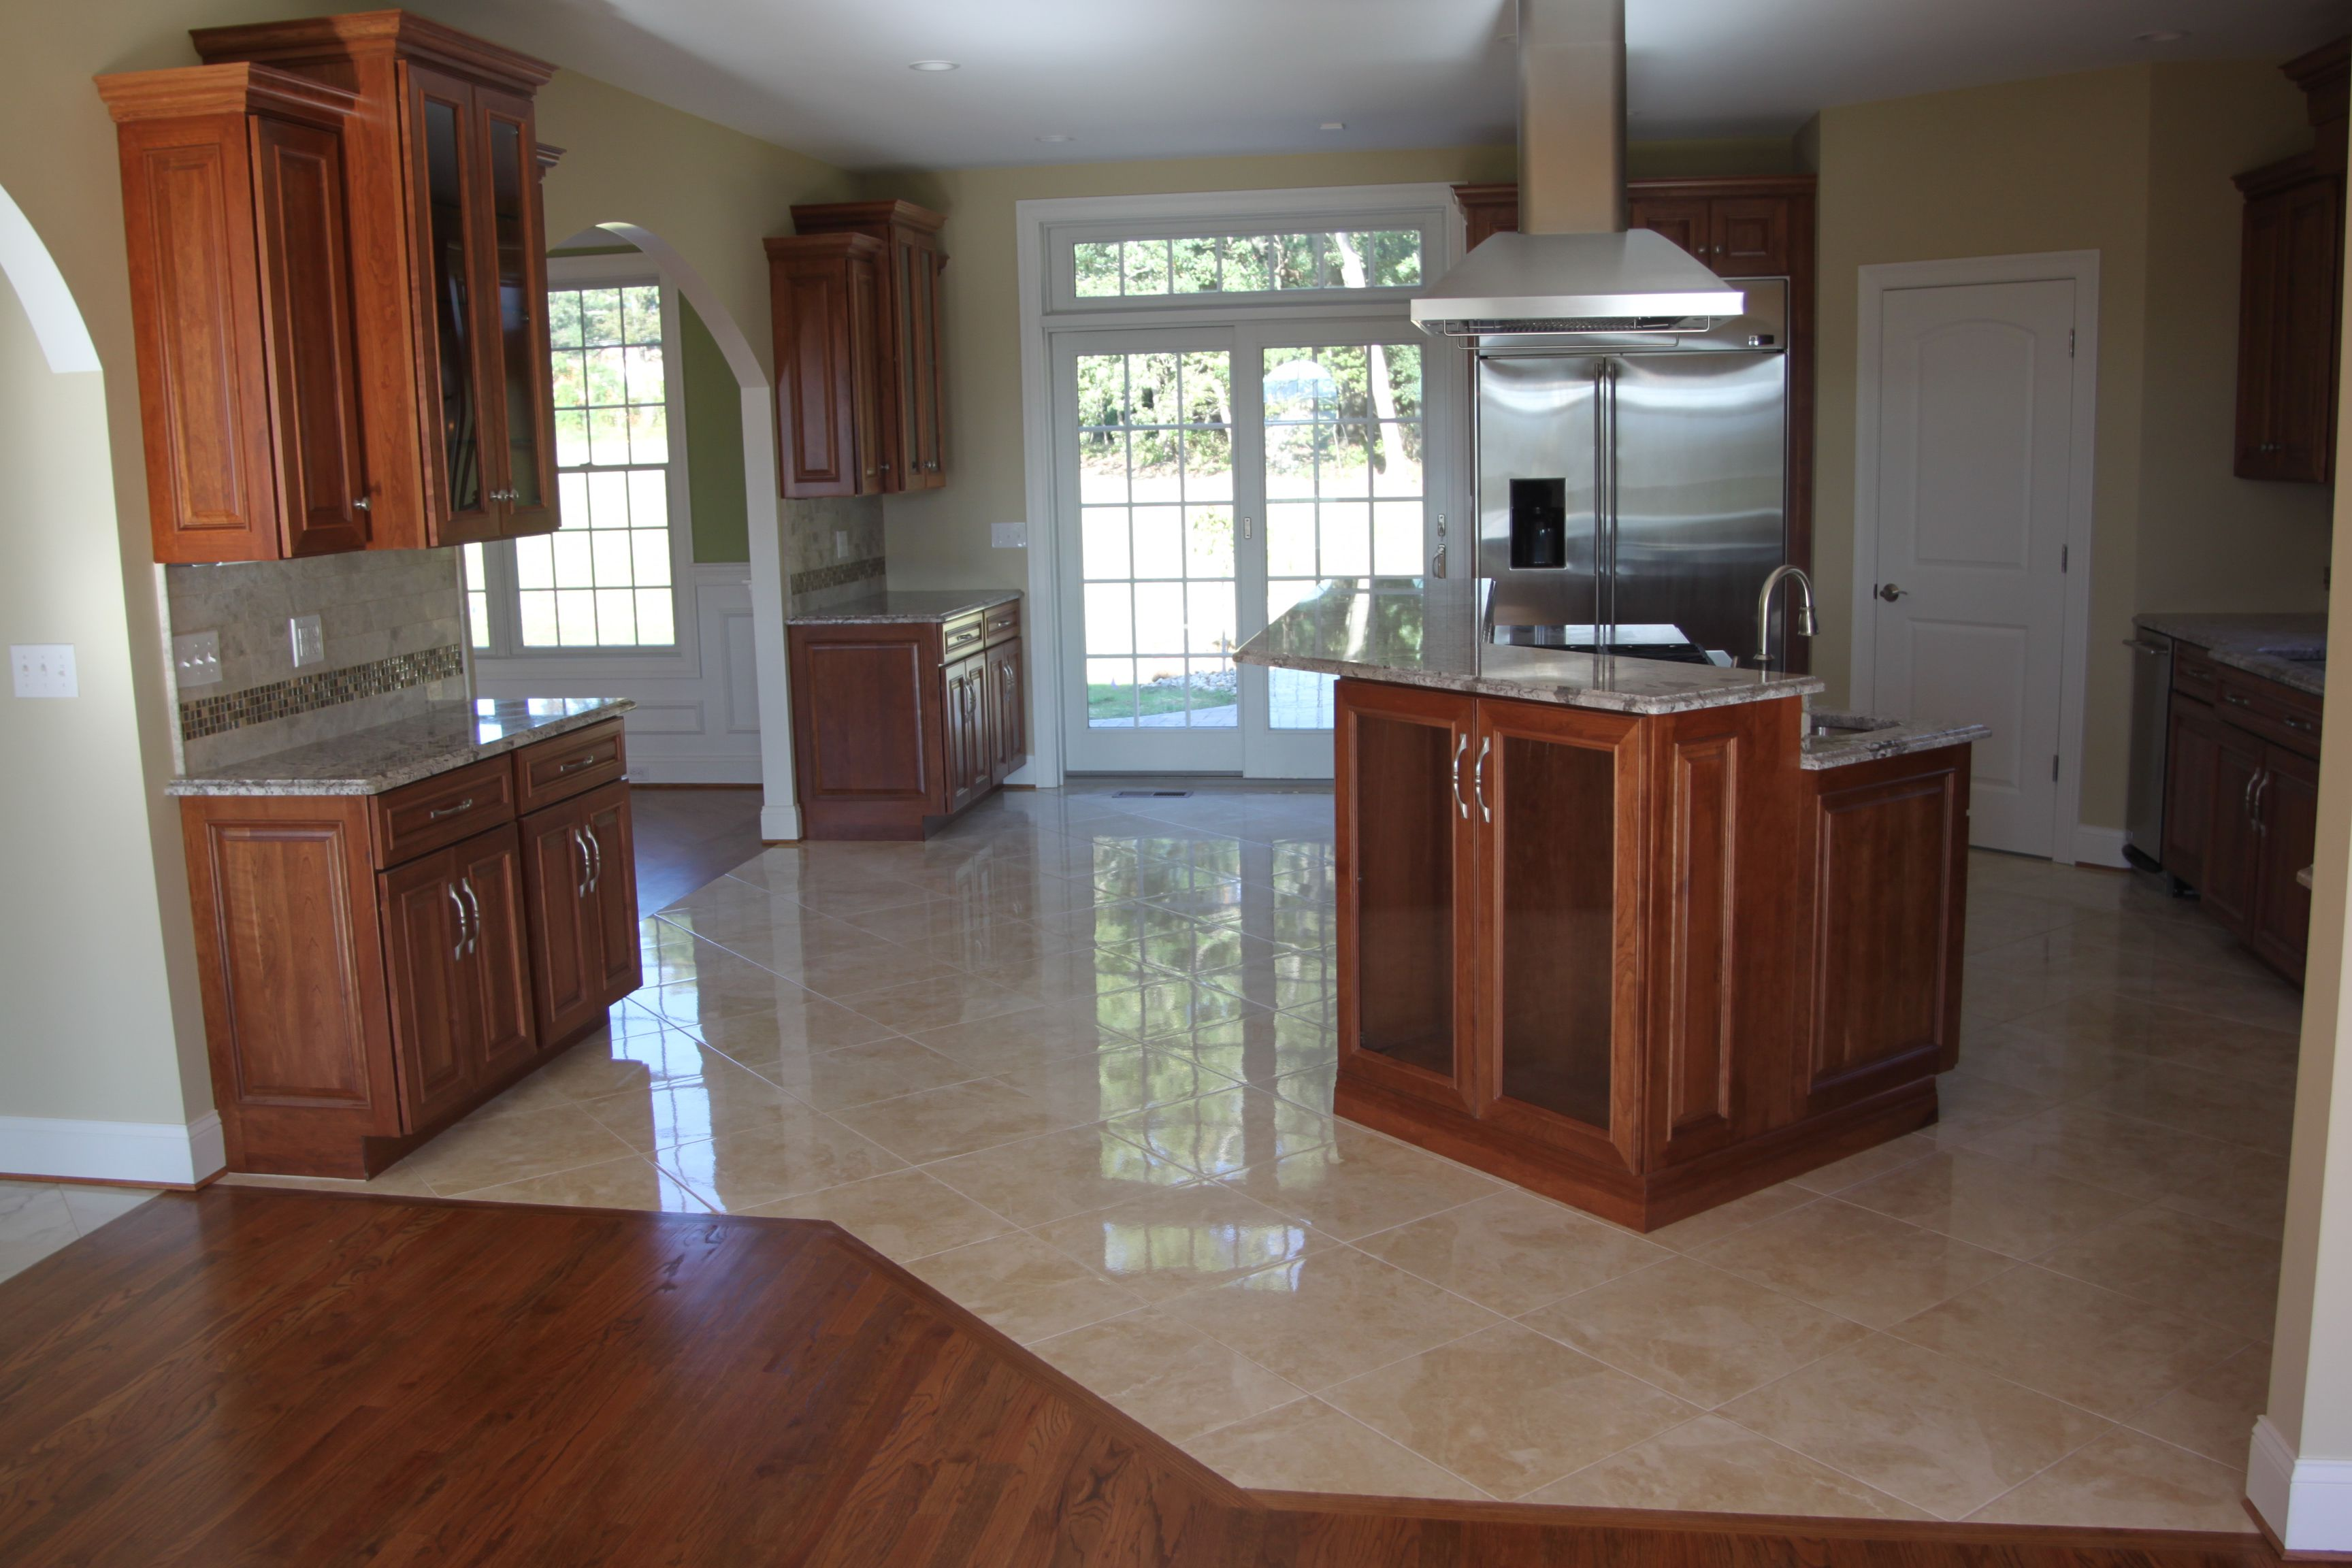 Floor tile designs ideas to enhance your floor appearance for Kitchen flooring